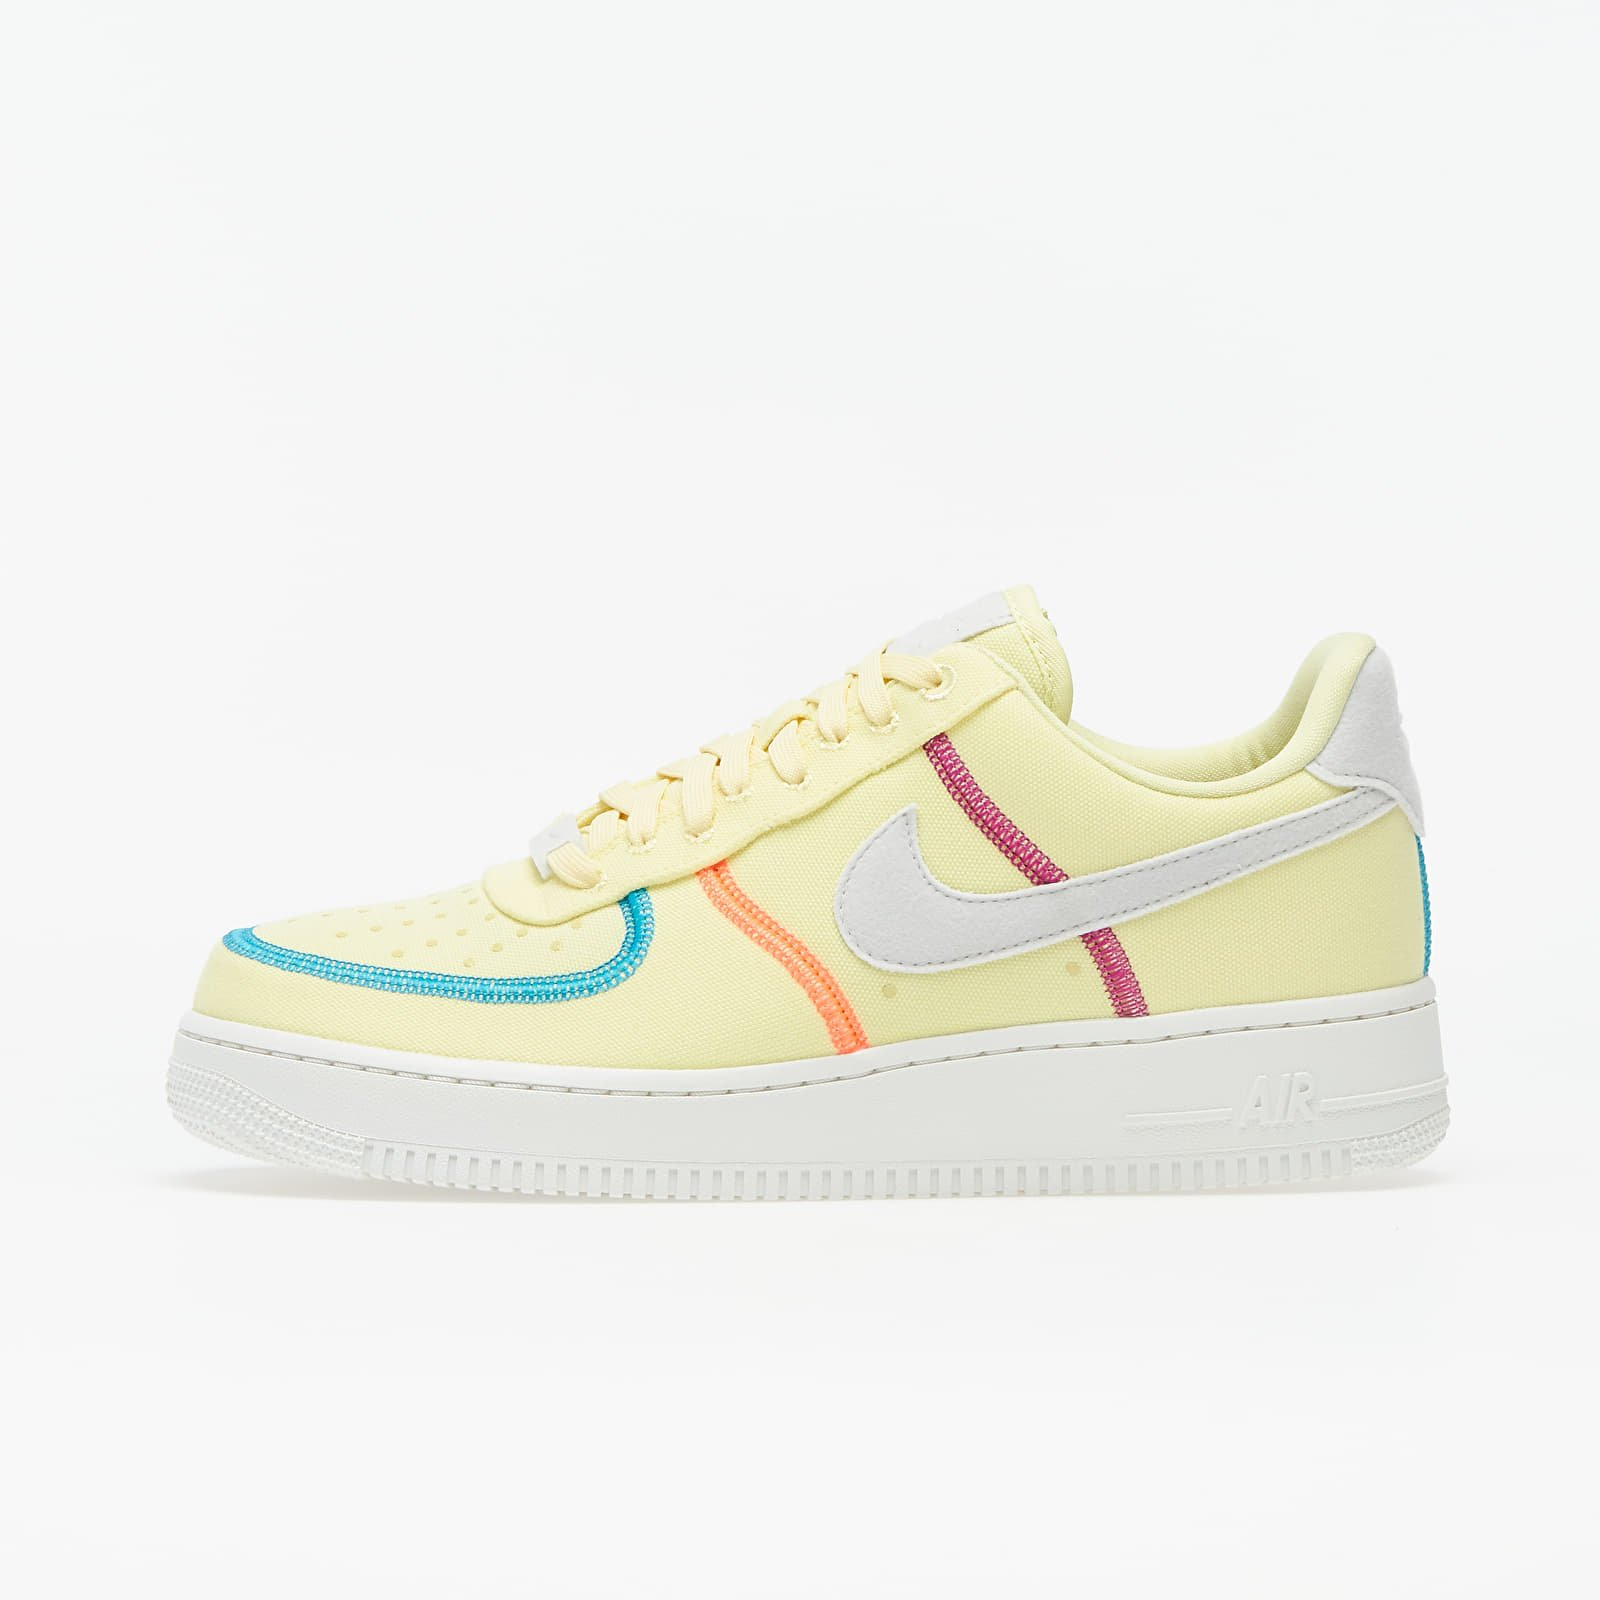 Zapatillas mujer Nike Wmns Air Force 1 '07 LX Life Lime/ Photon Dust-Laser Blue